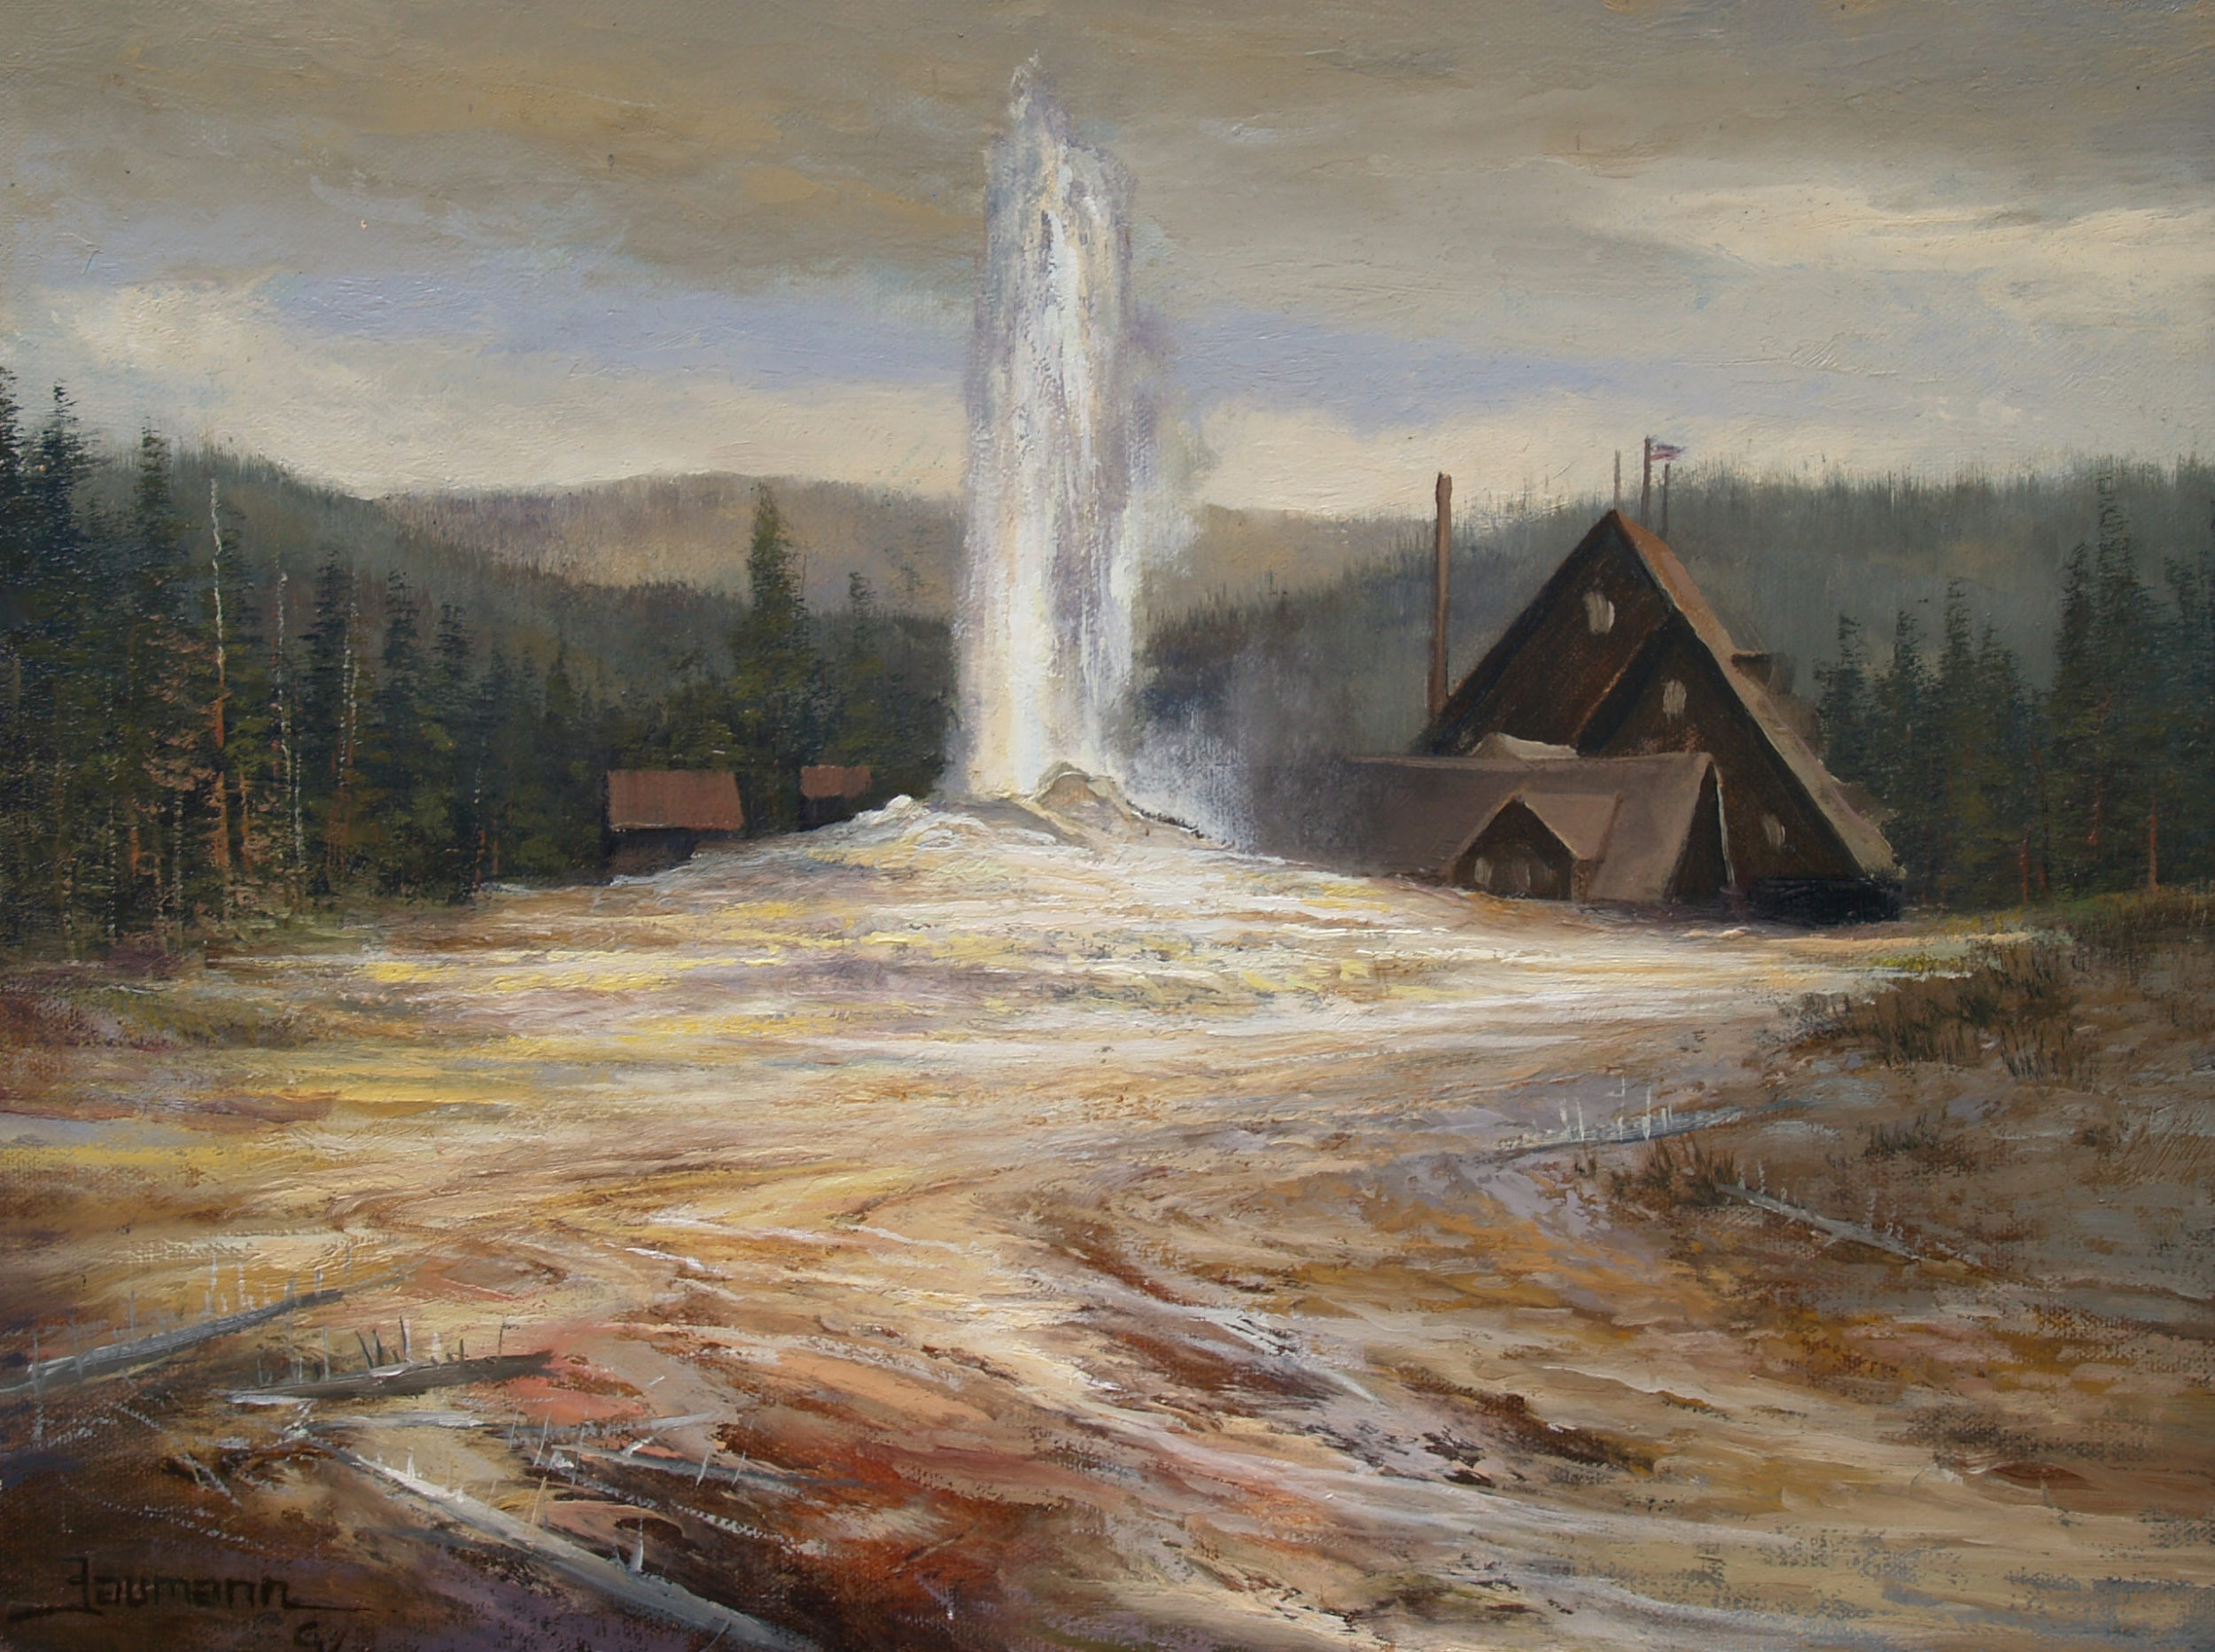 How Much Does Paint Cost >> Landscape Paintings by Stefan Baumann